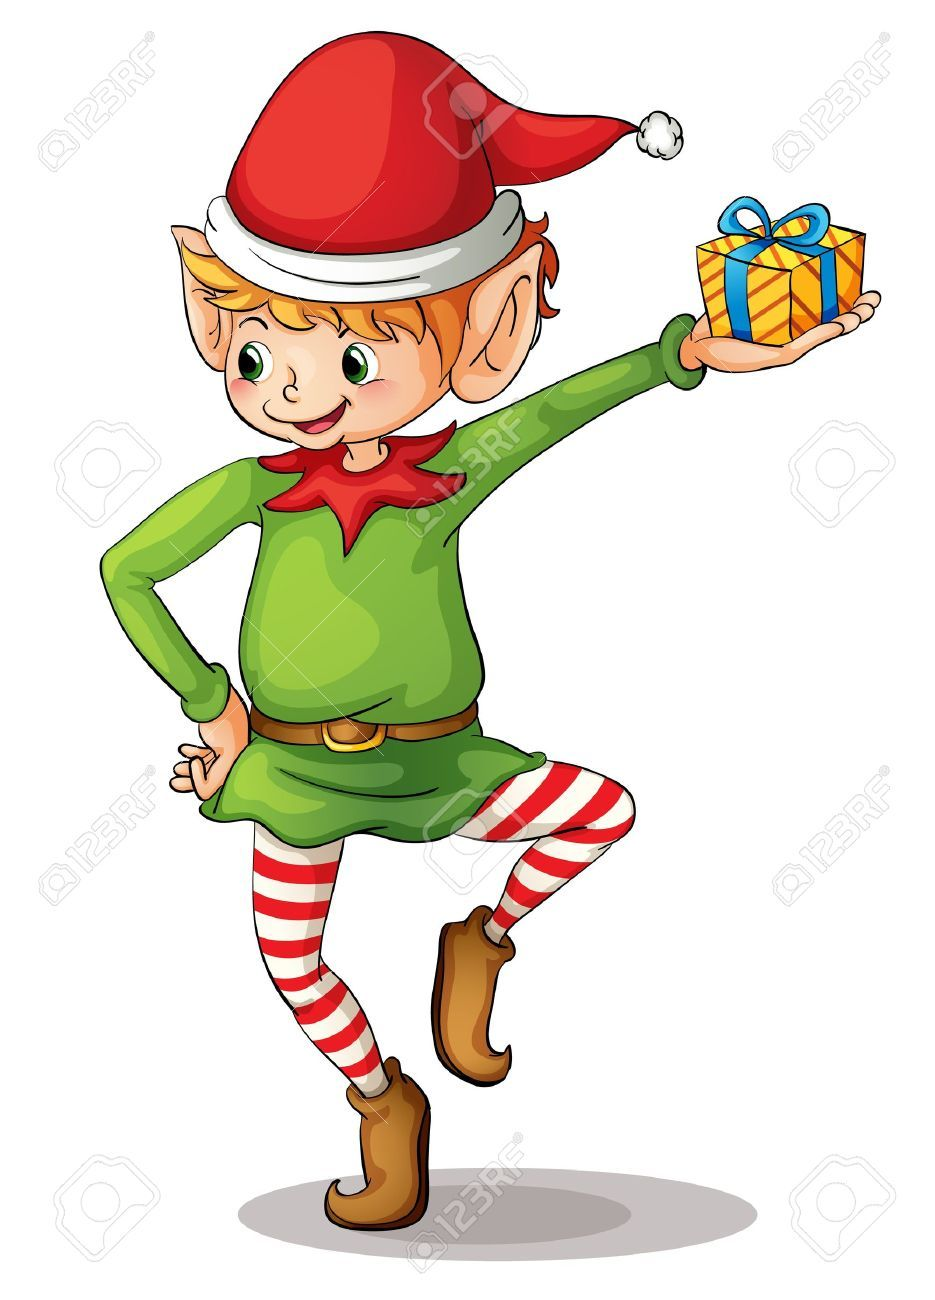 Illustration Of A Christmas Elf Royalty Free Cliparts ...